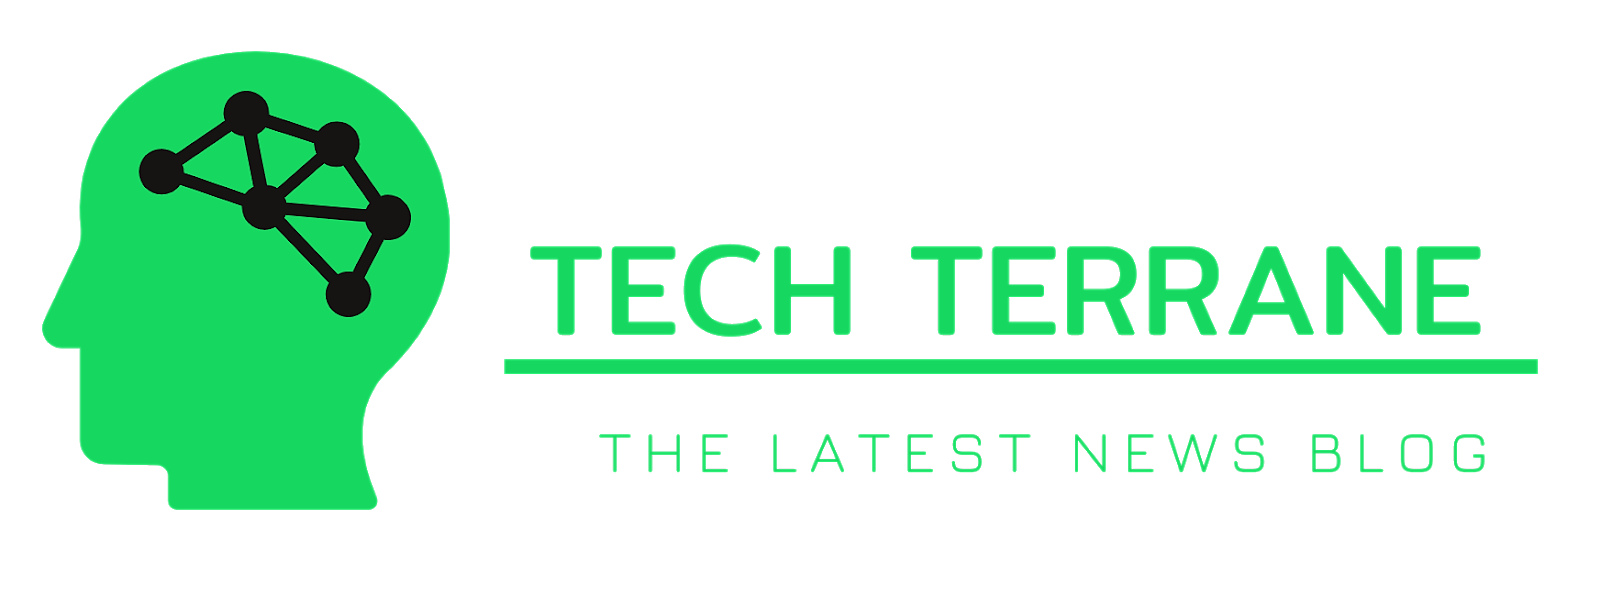 Tech Terrane Latest News Website